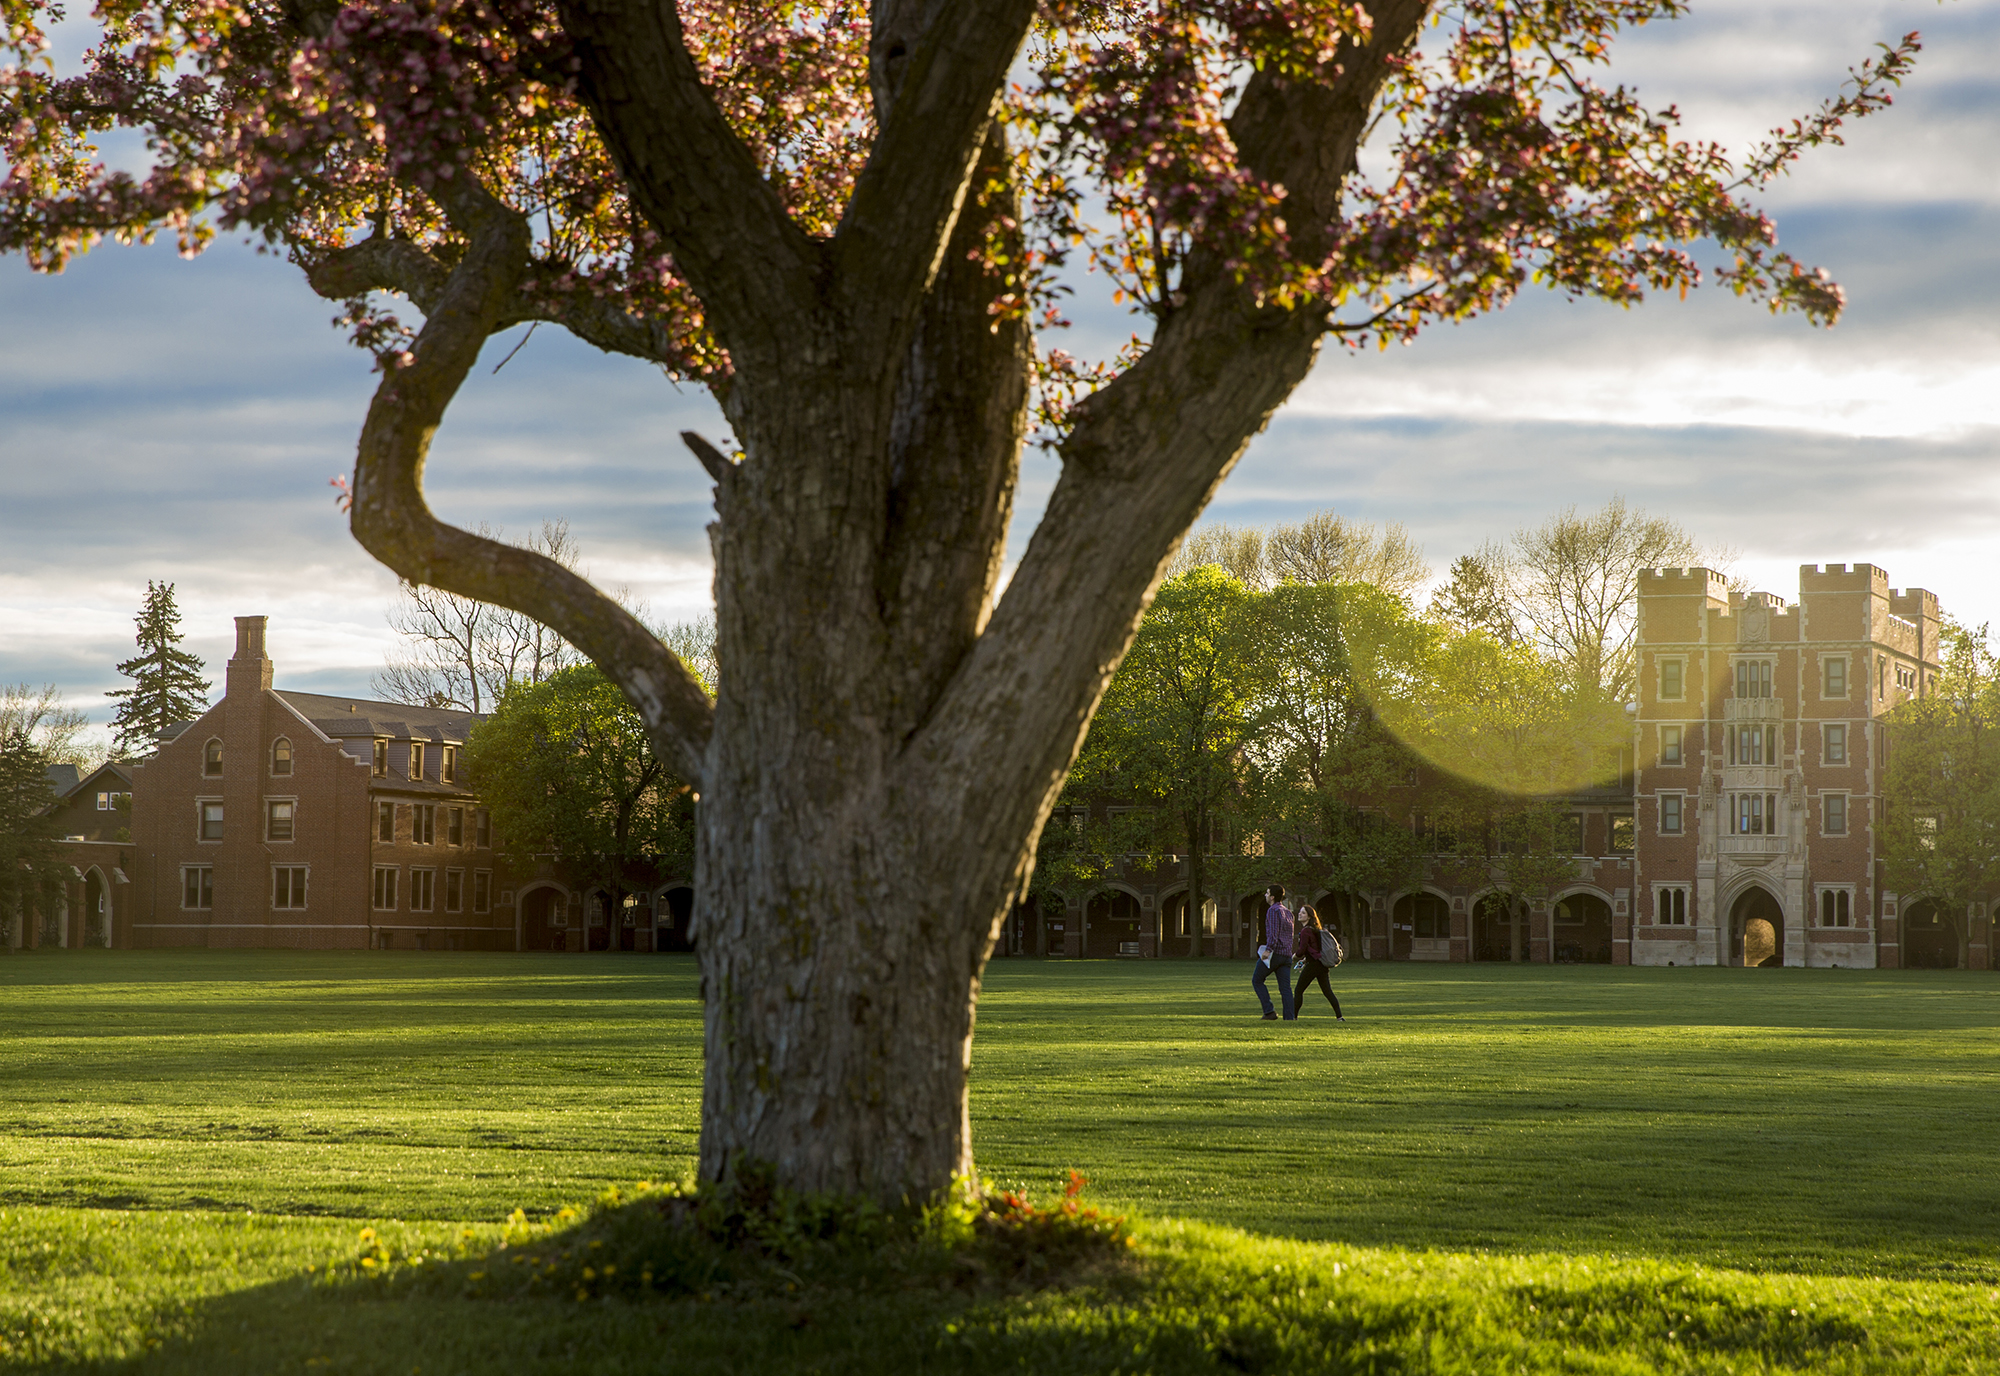 Two students cross Mac Field at sunset, with a crabapple tree in the foreground